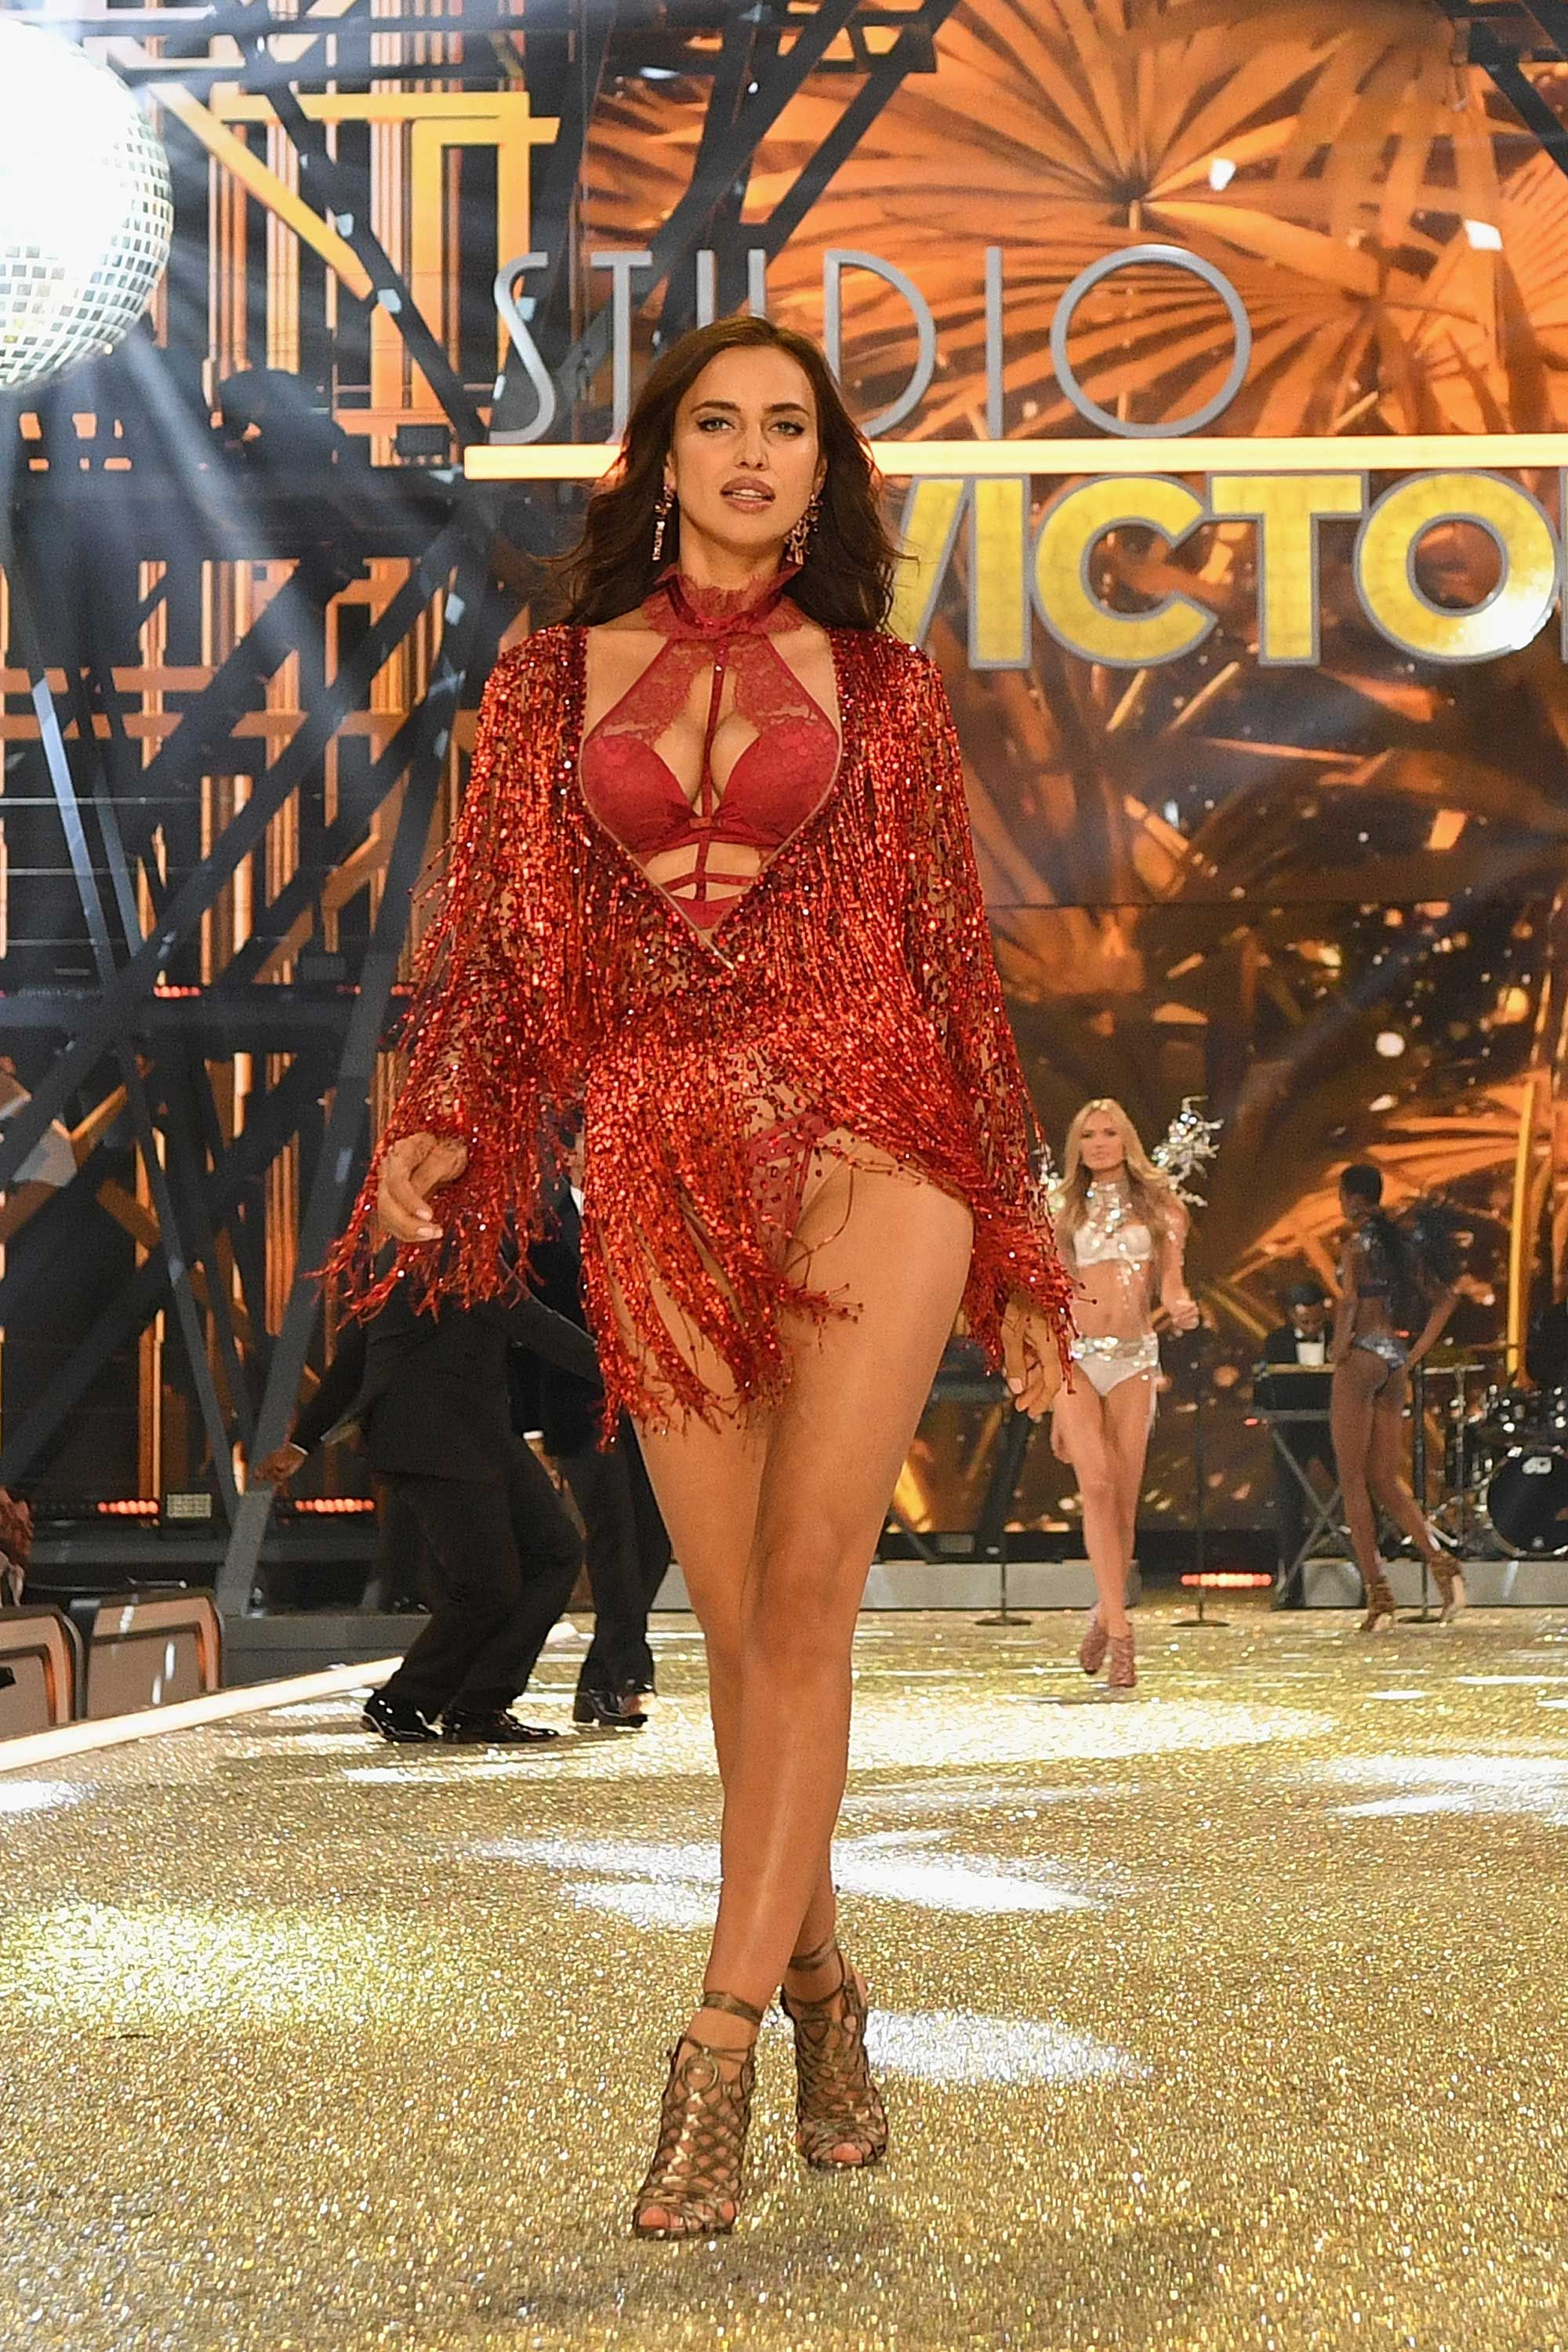 Why Victorias Secret still refuses to include plus-size women in its shows